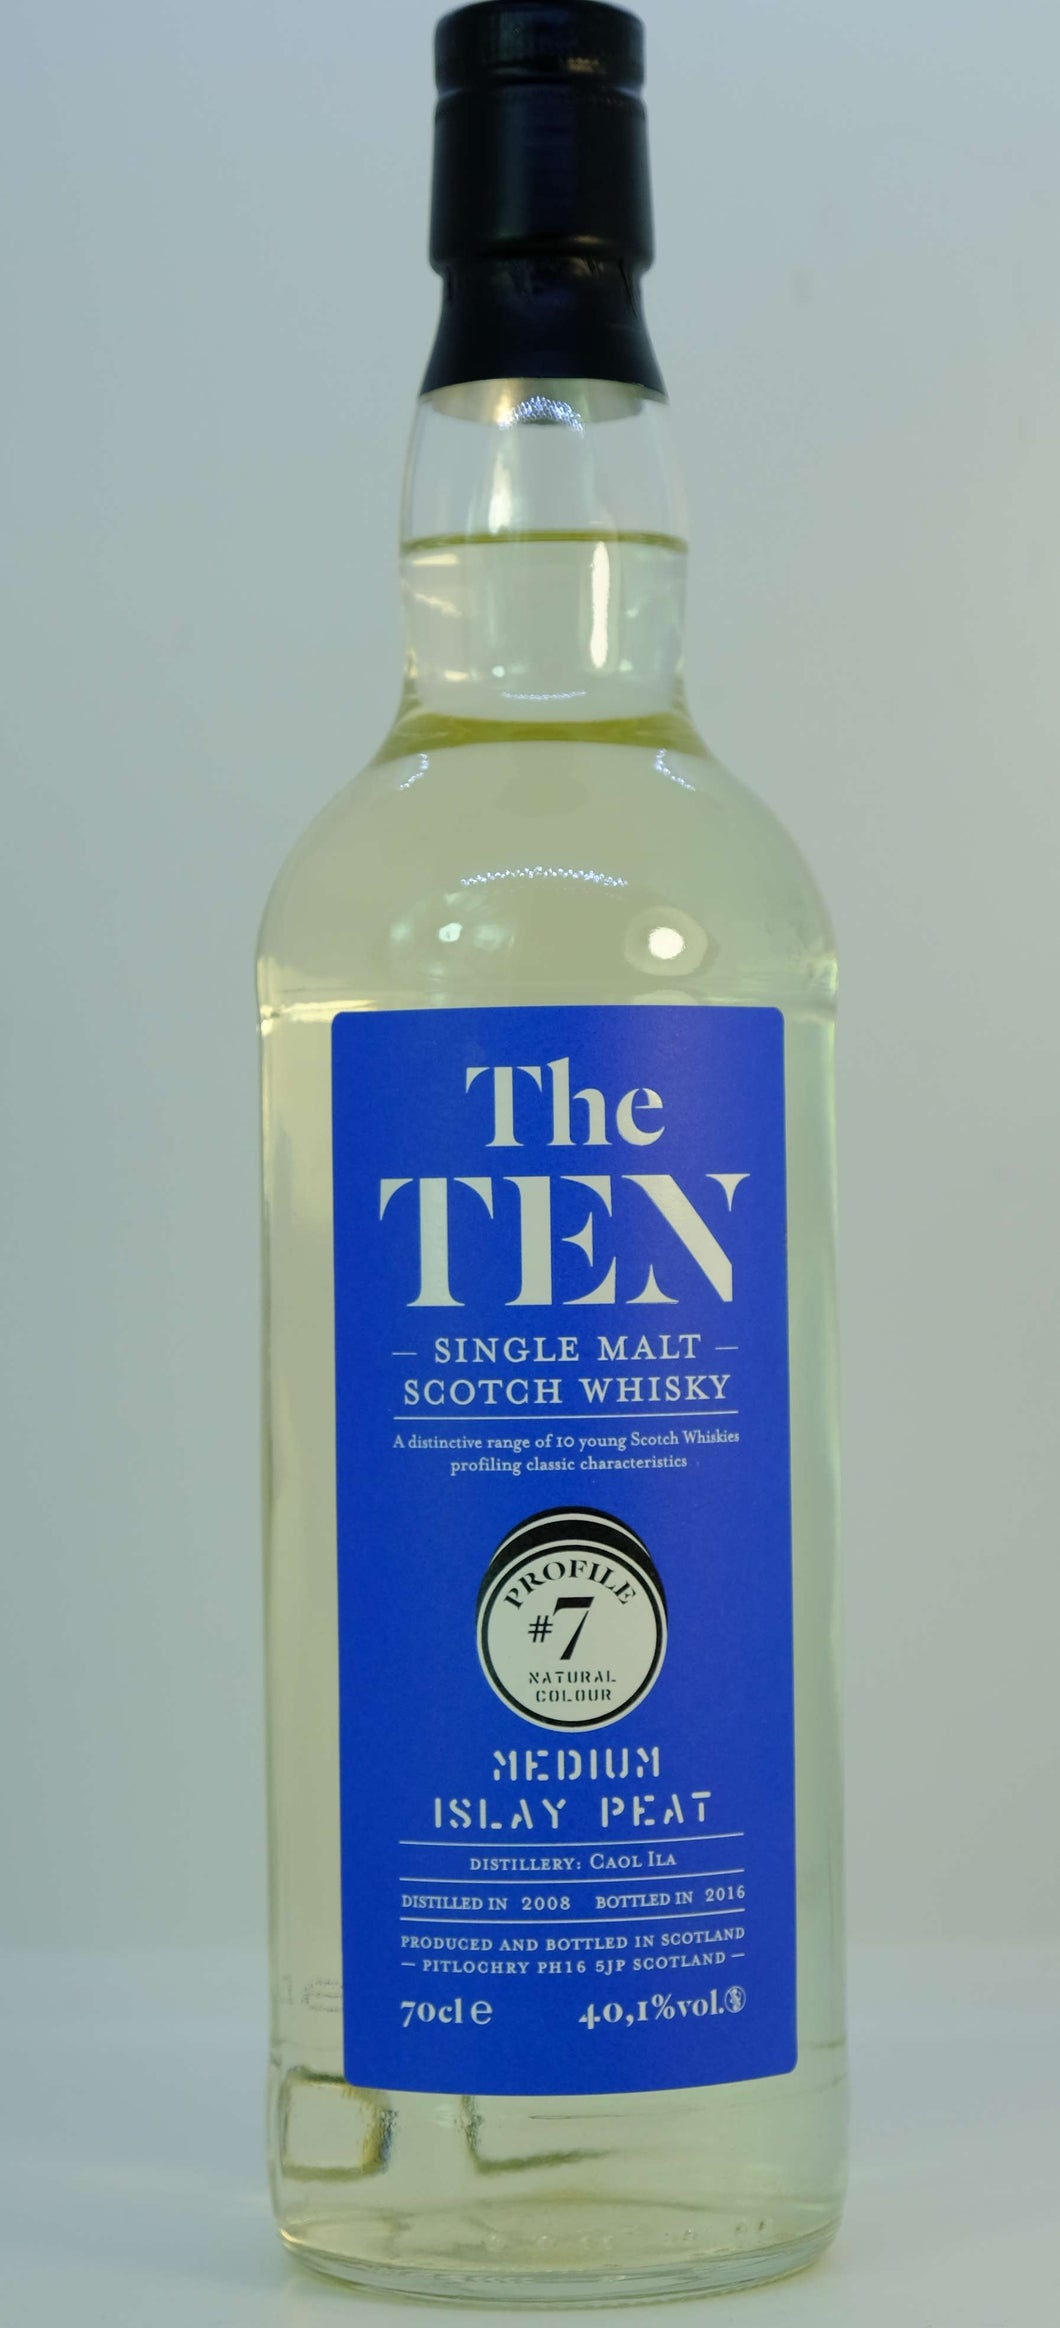 The Ten Medium Islay Peat